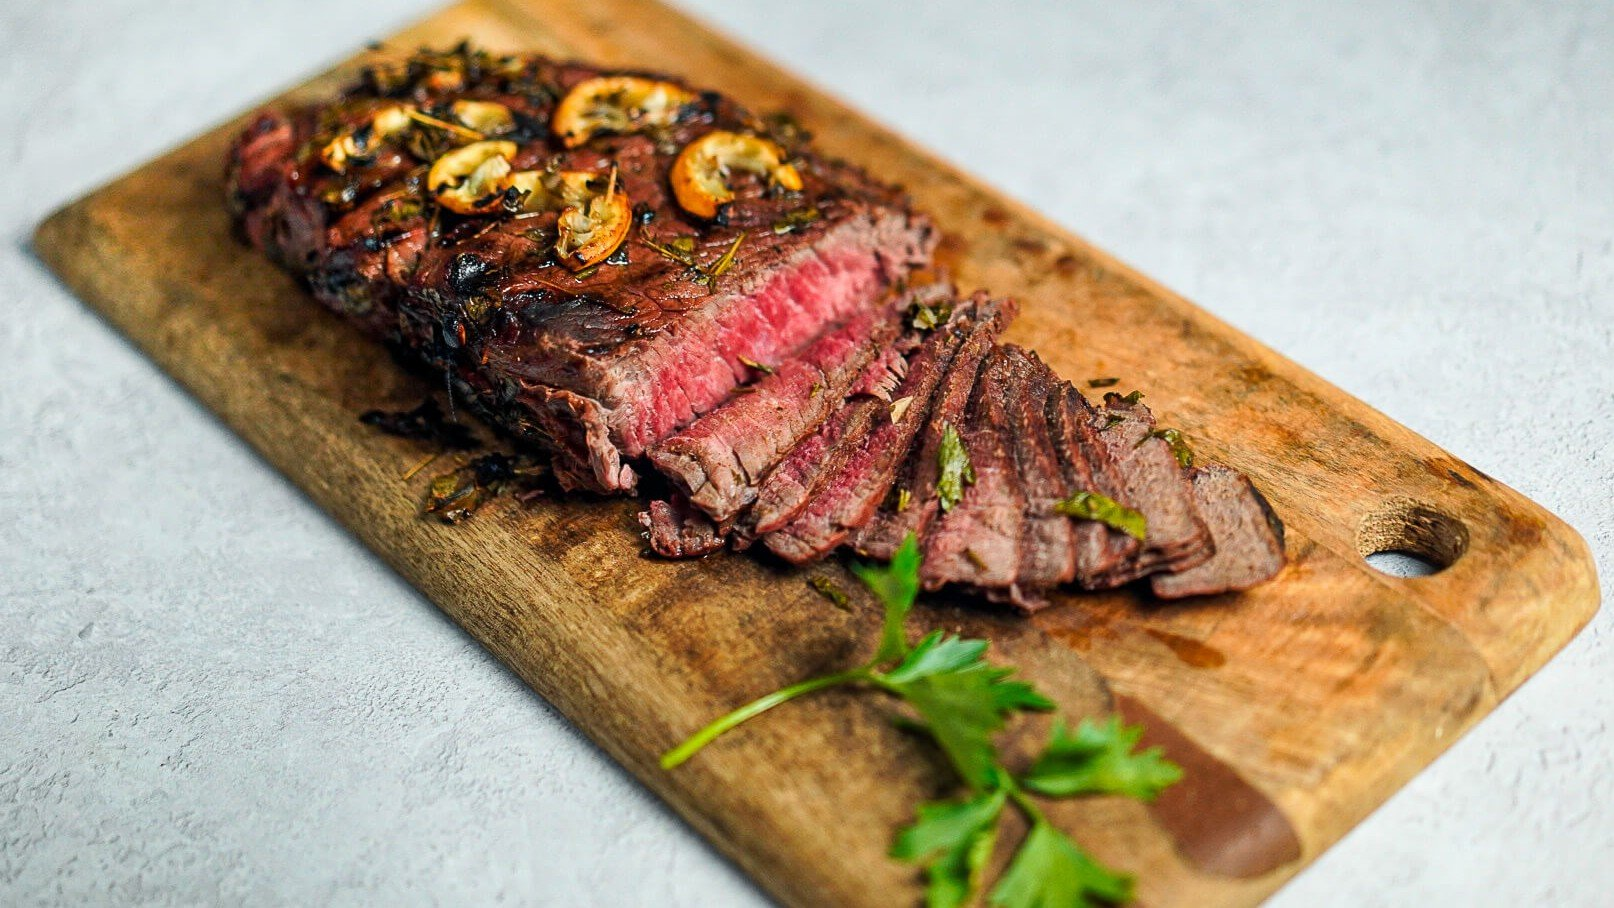 Grassfed London Broil marinated cooked cut